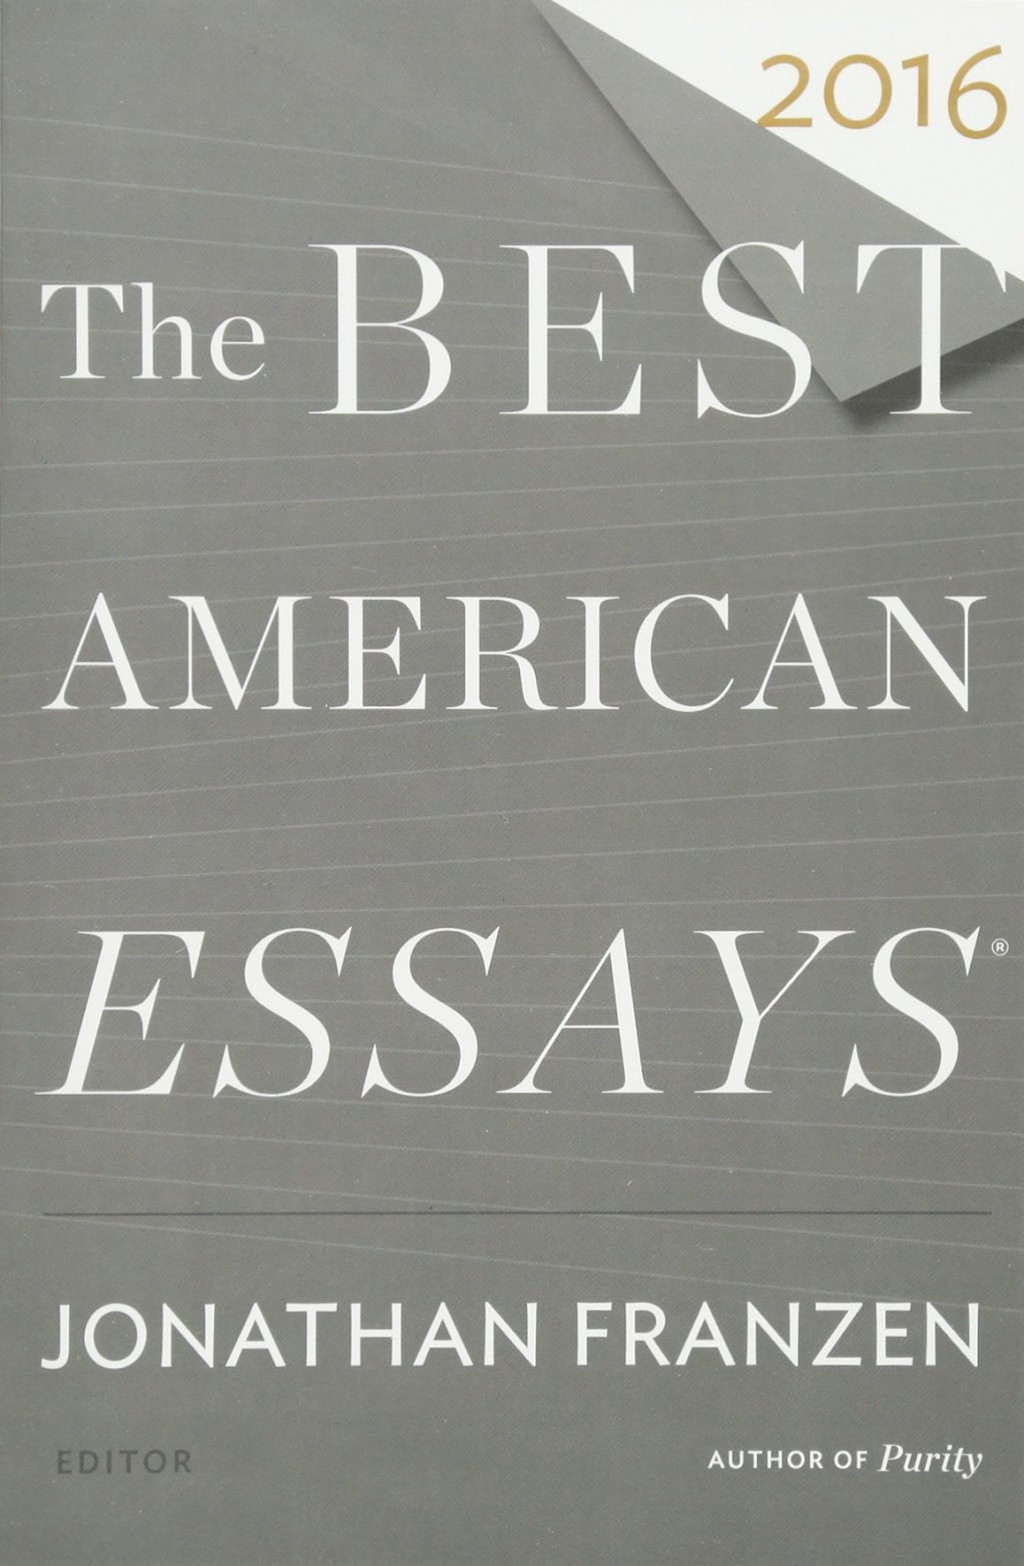 001 71a6bhsgsdl Essay Example Best American Essays Unique 2016 The Free Pdf Notables Large